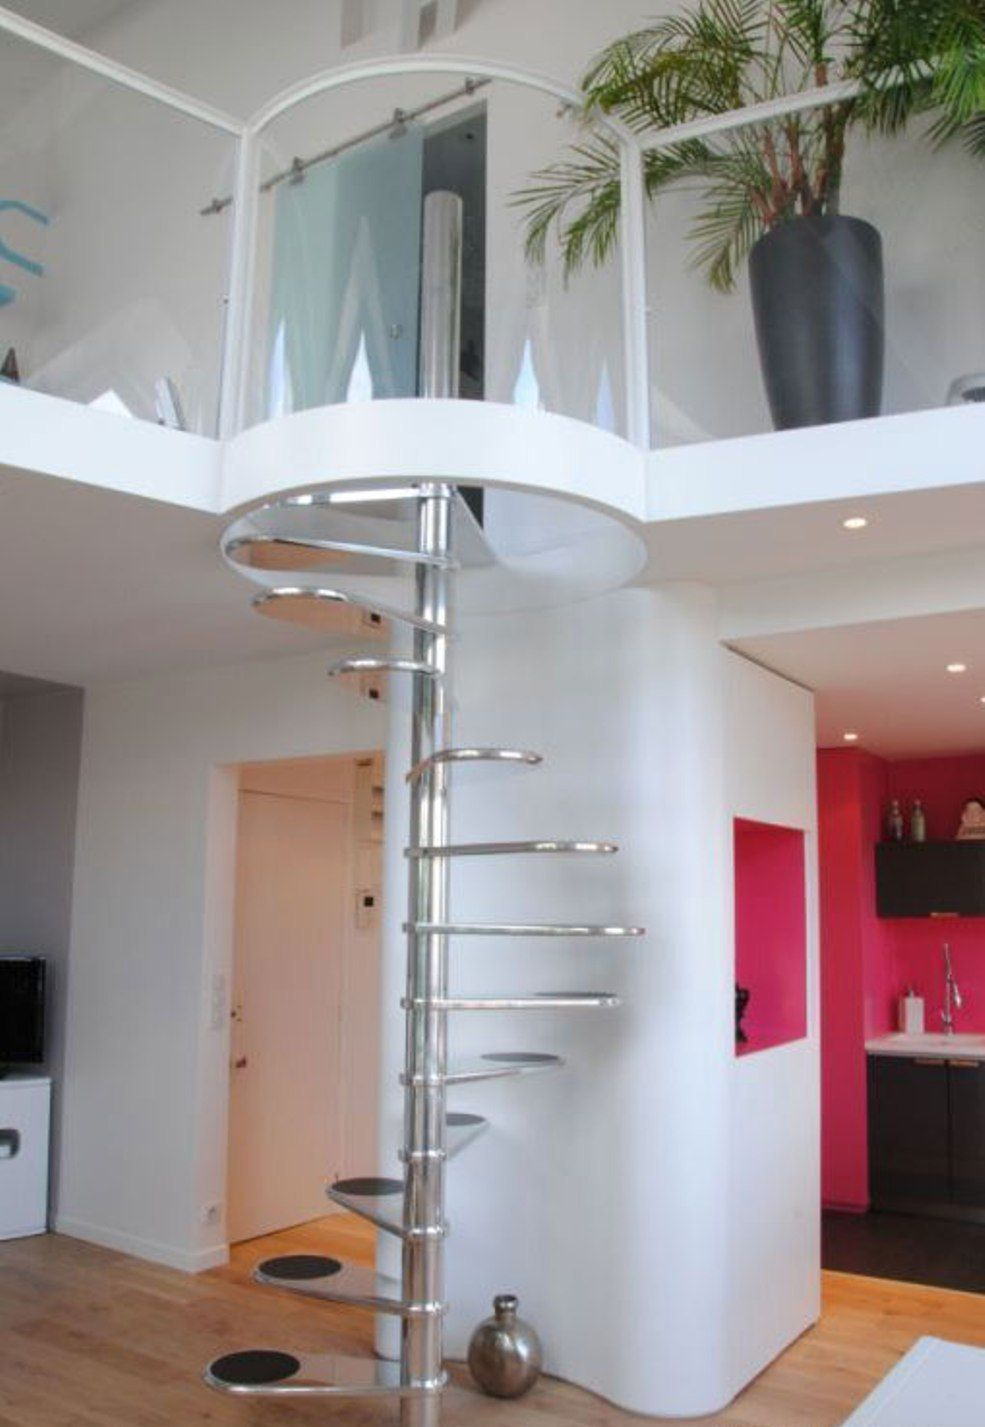 Top Interesting Modern Living Room Spiral Staircase Multitude | Spiral Staircase To Attic Bedroom | Loft Bedroom | Tight Space | Design | Before And After | Attic Ladder